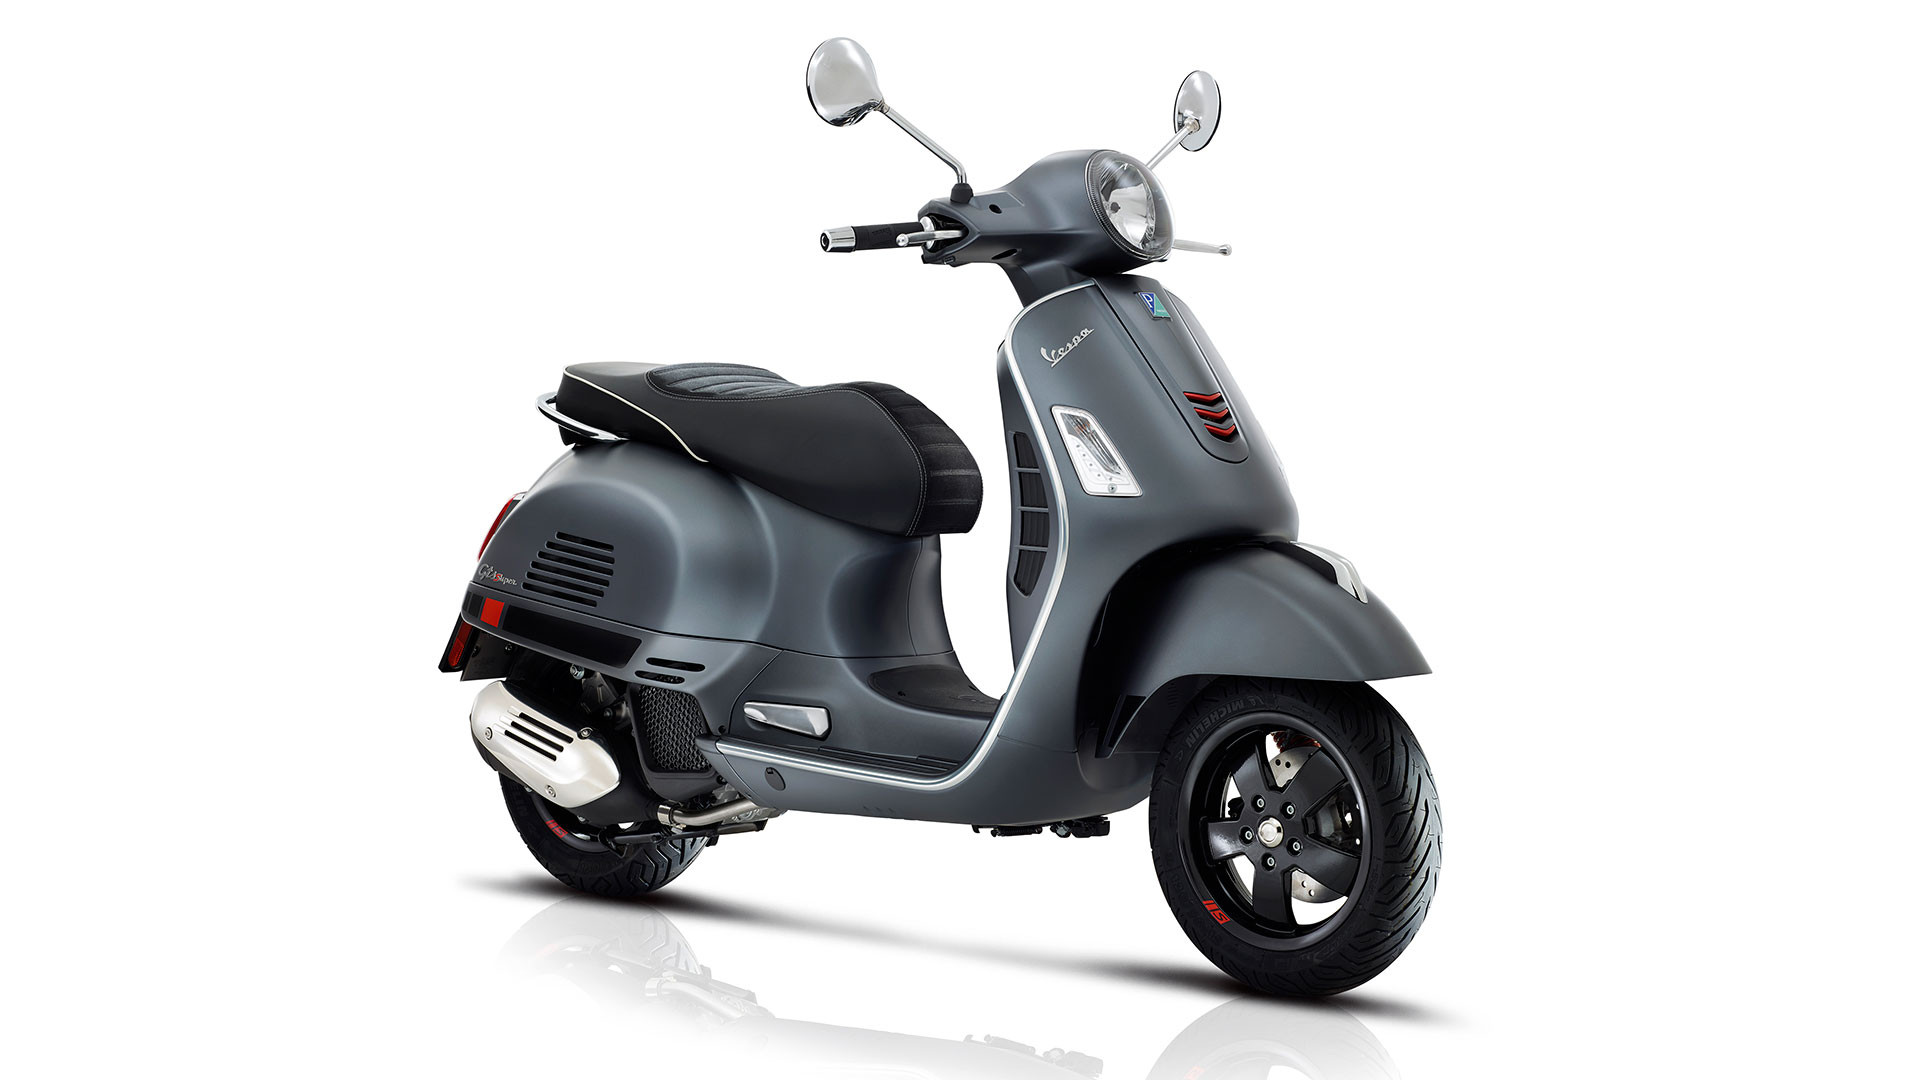 Achat Vespa GTS SuperSport ABS 125 cm3 neuf à Nice chez Scoot Center-1